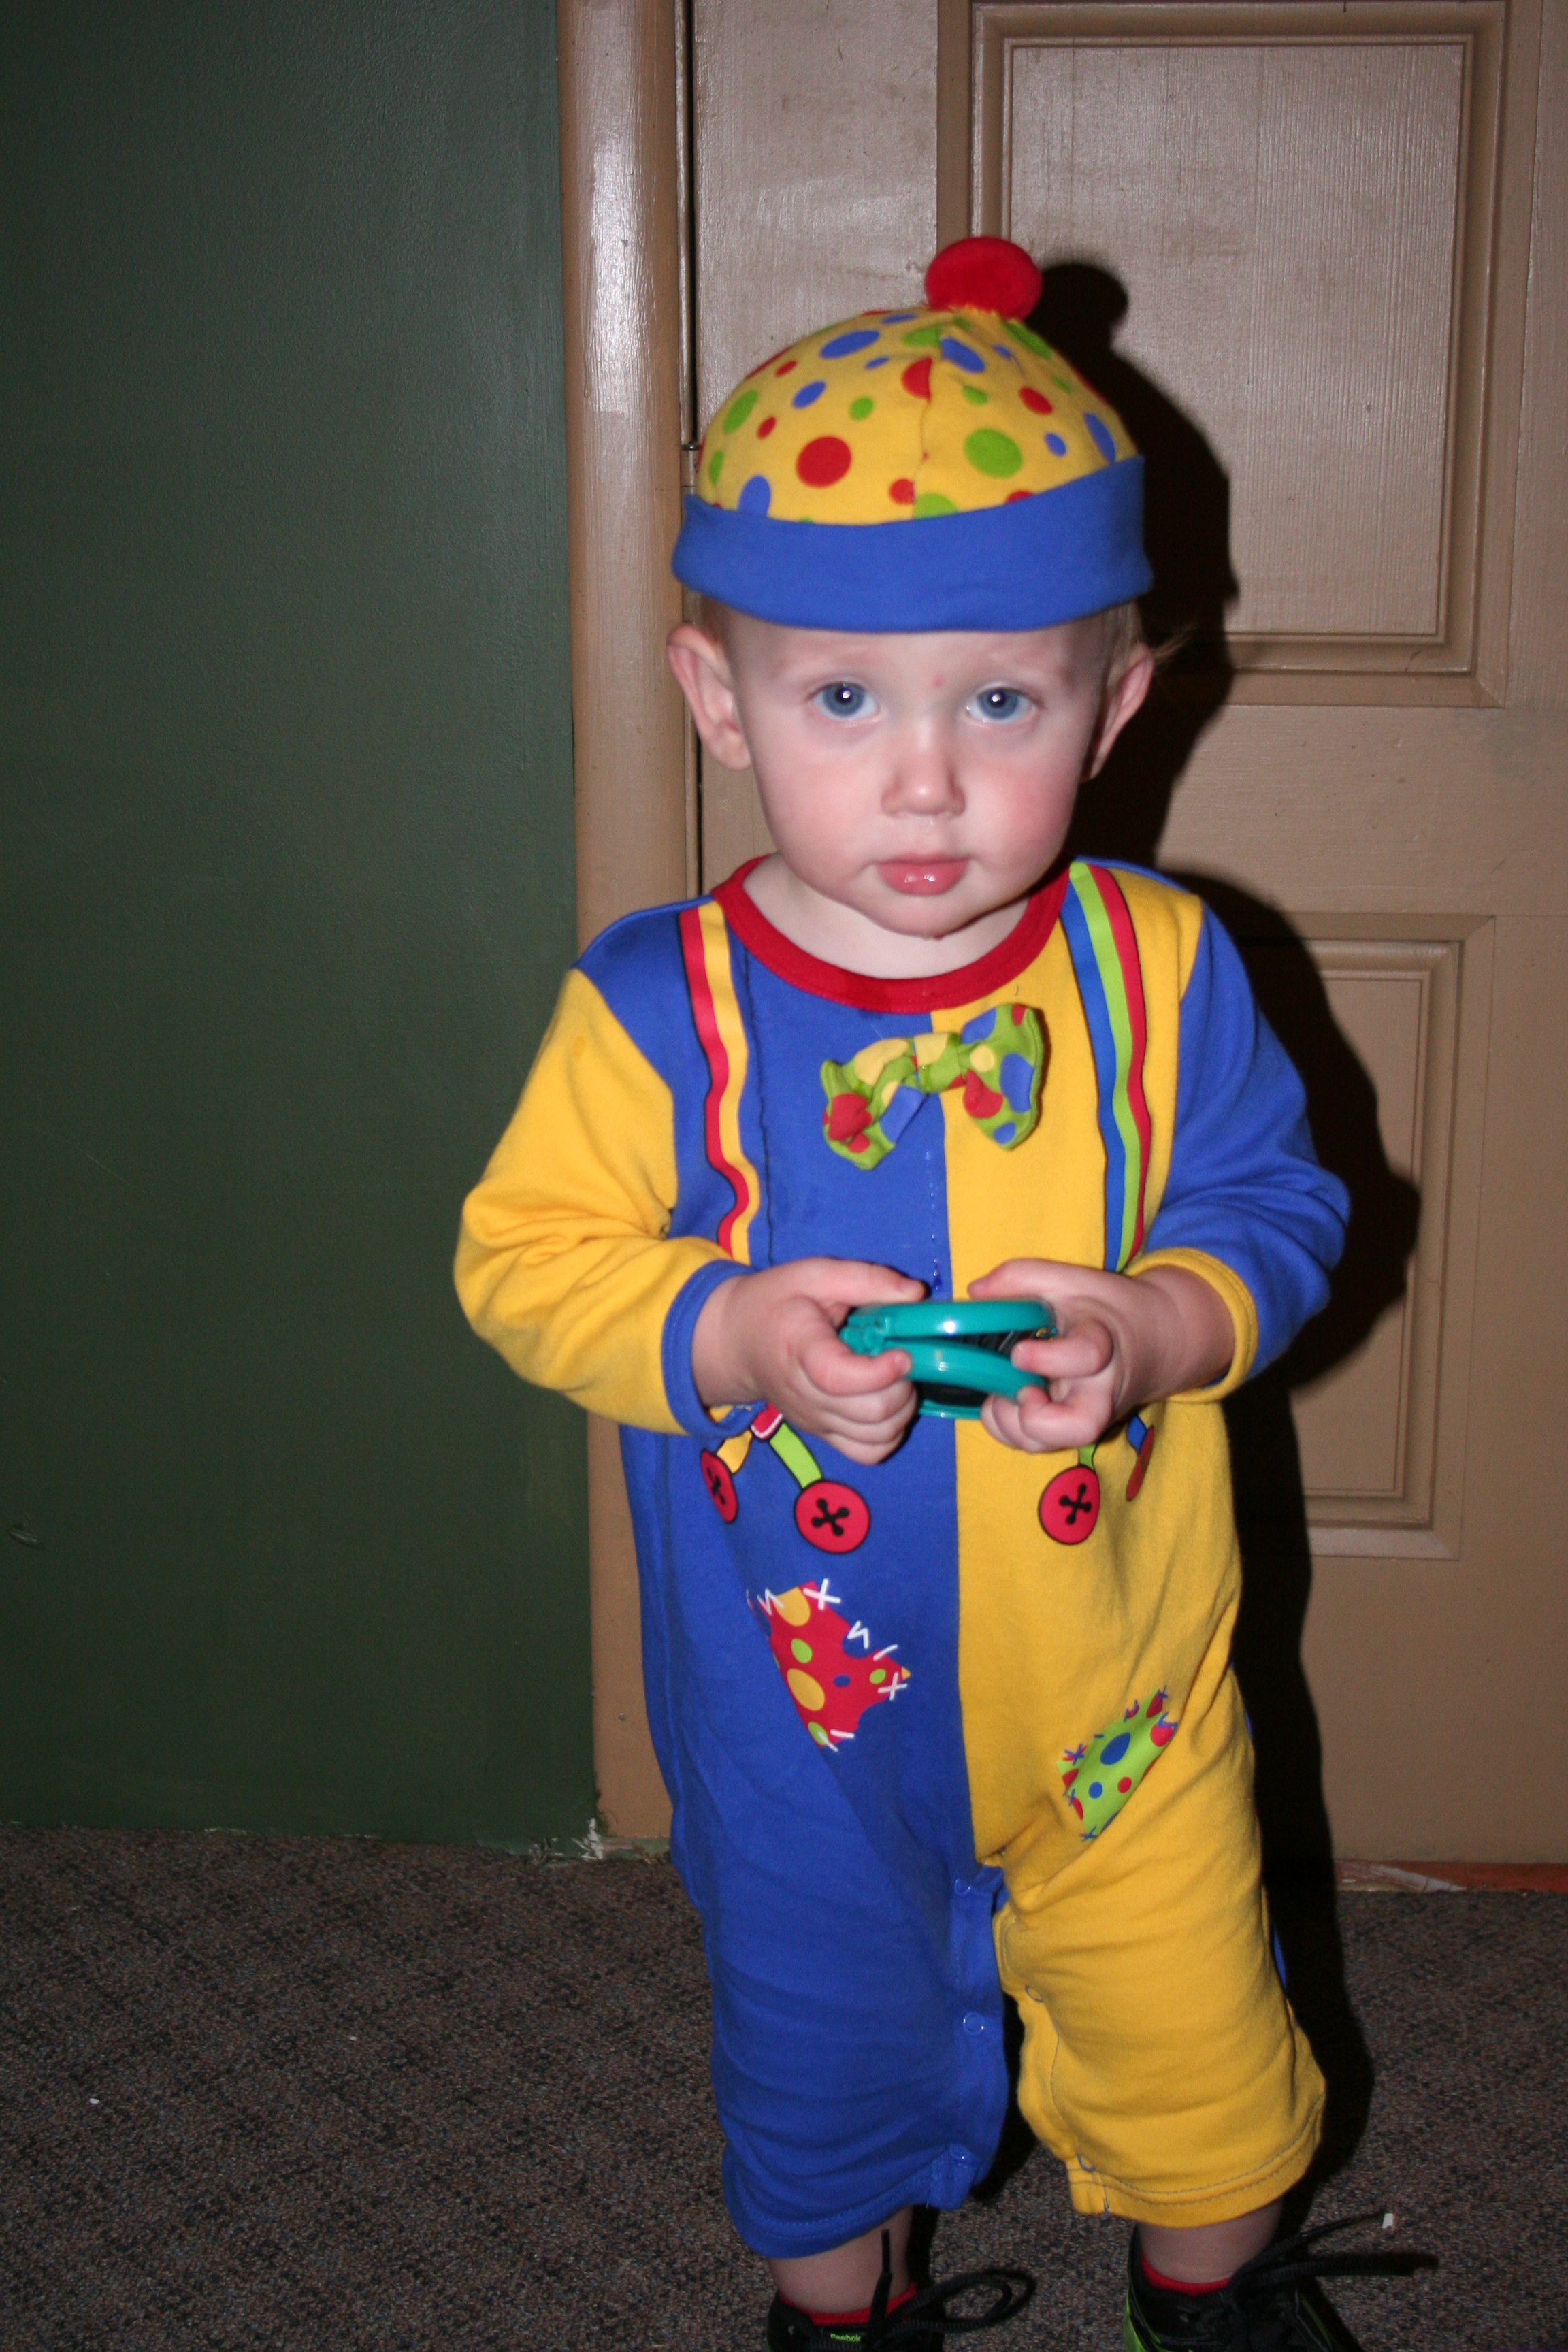 Blakely the Clown from Clarksville